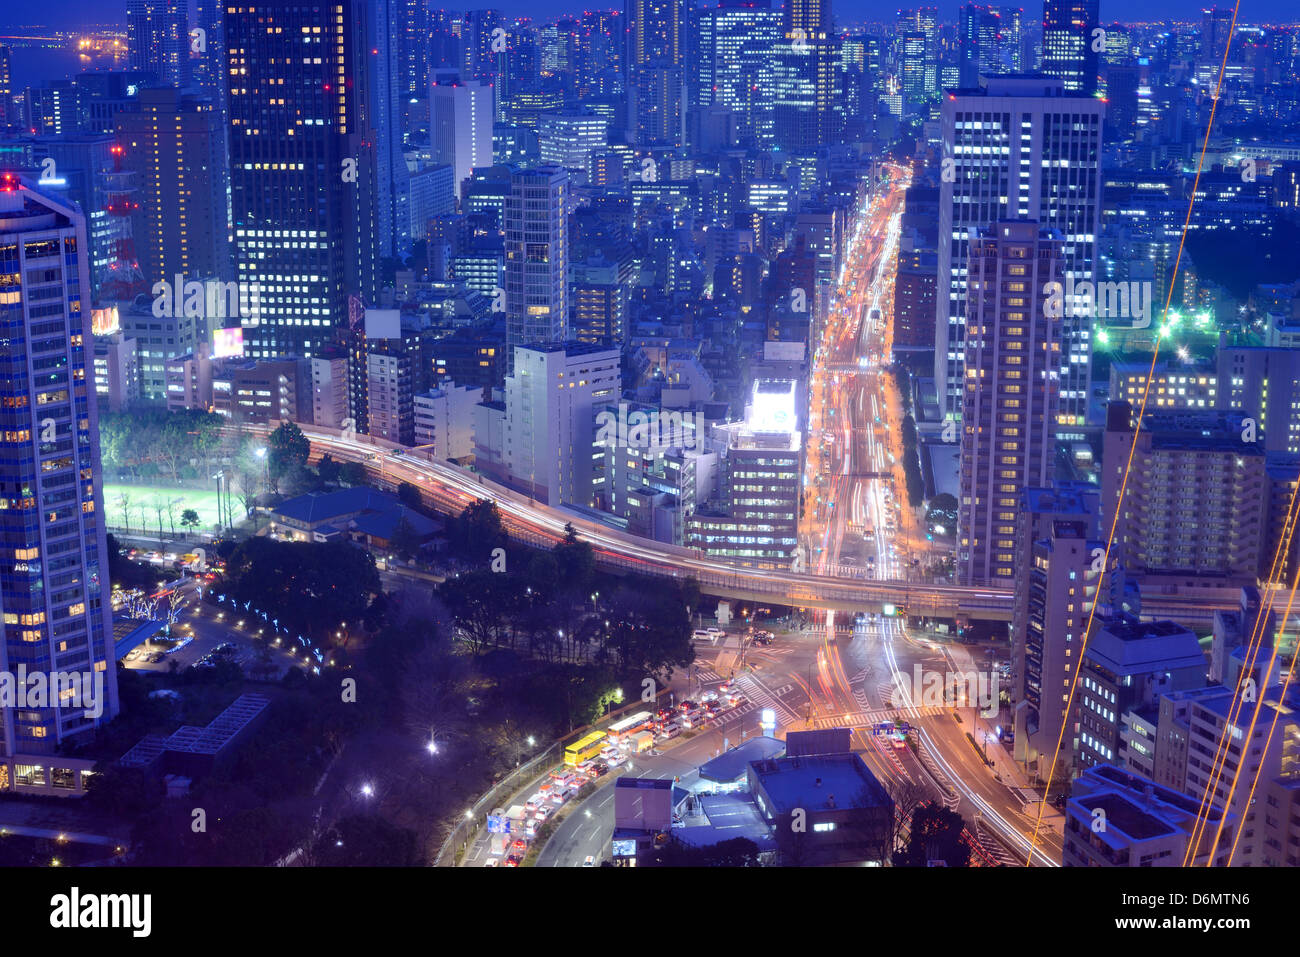 Highways and roads in Tokyo, Japan - Stock Image